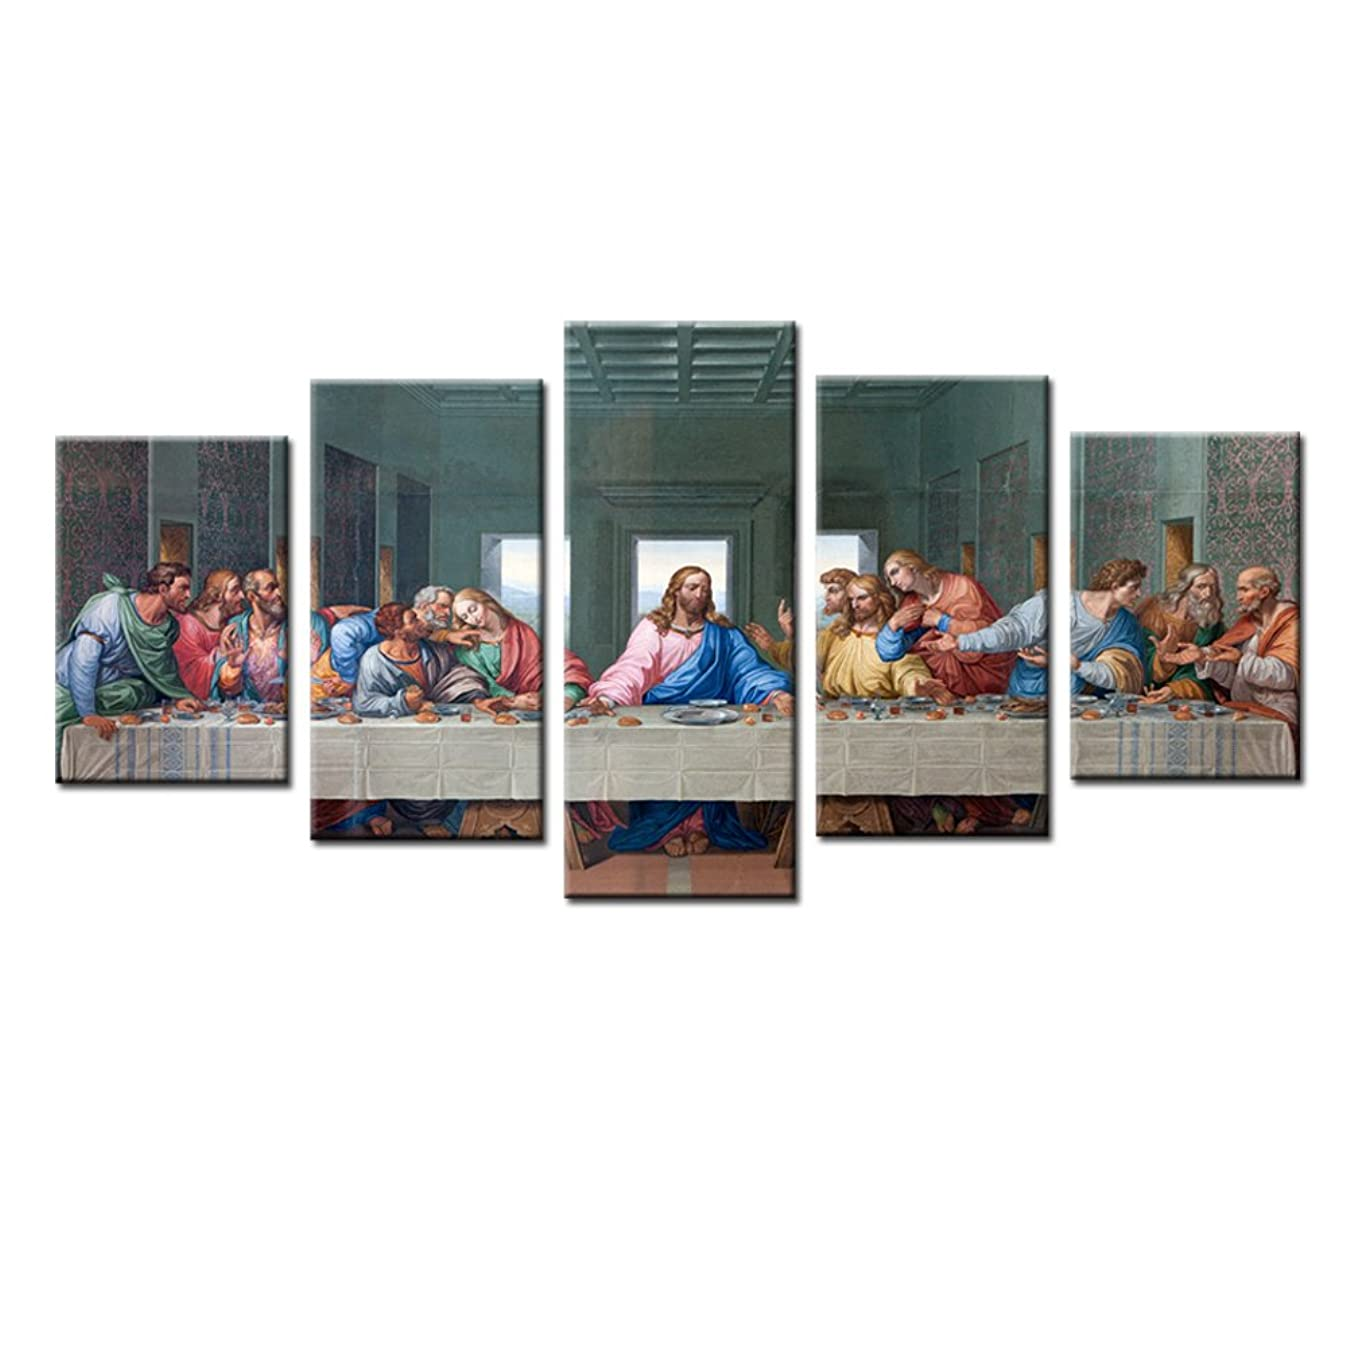 Jingtao Art 1 Jesus The Last Supper Wall Art Painting Canvas Prints Home Decoration in 5 Pieces,Stretched-Ready to Hang (8x12inchx2+8x16inchx2+8x20inch) White